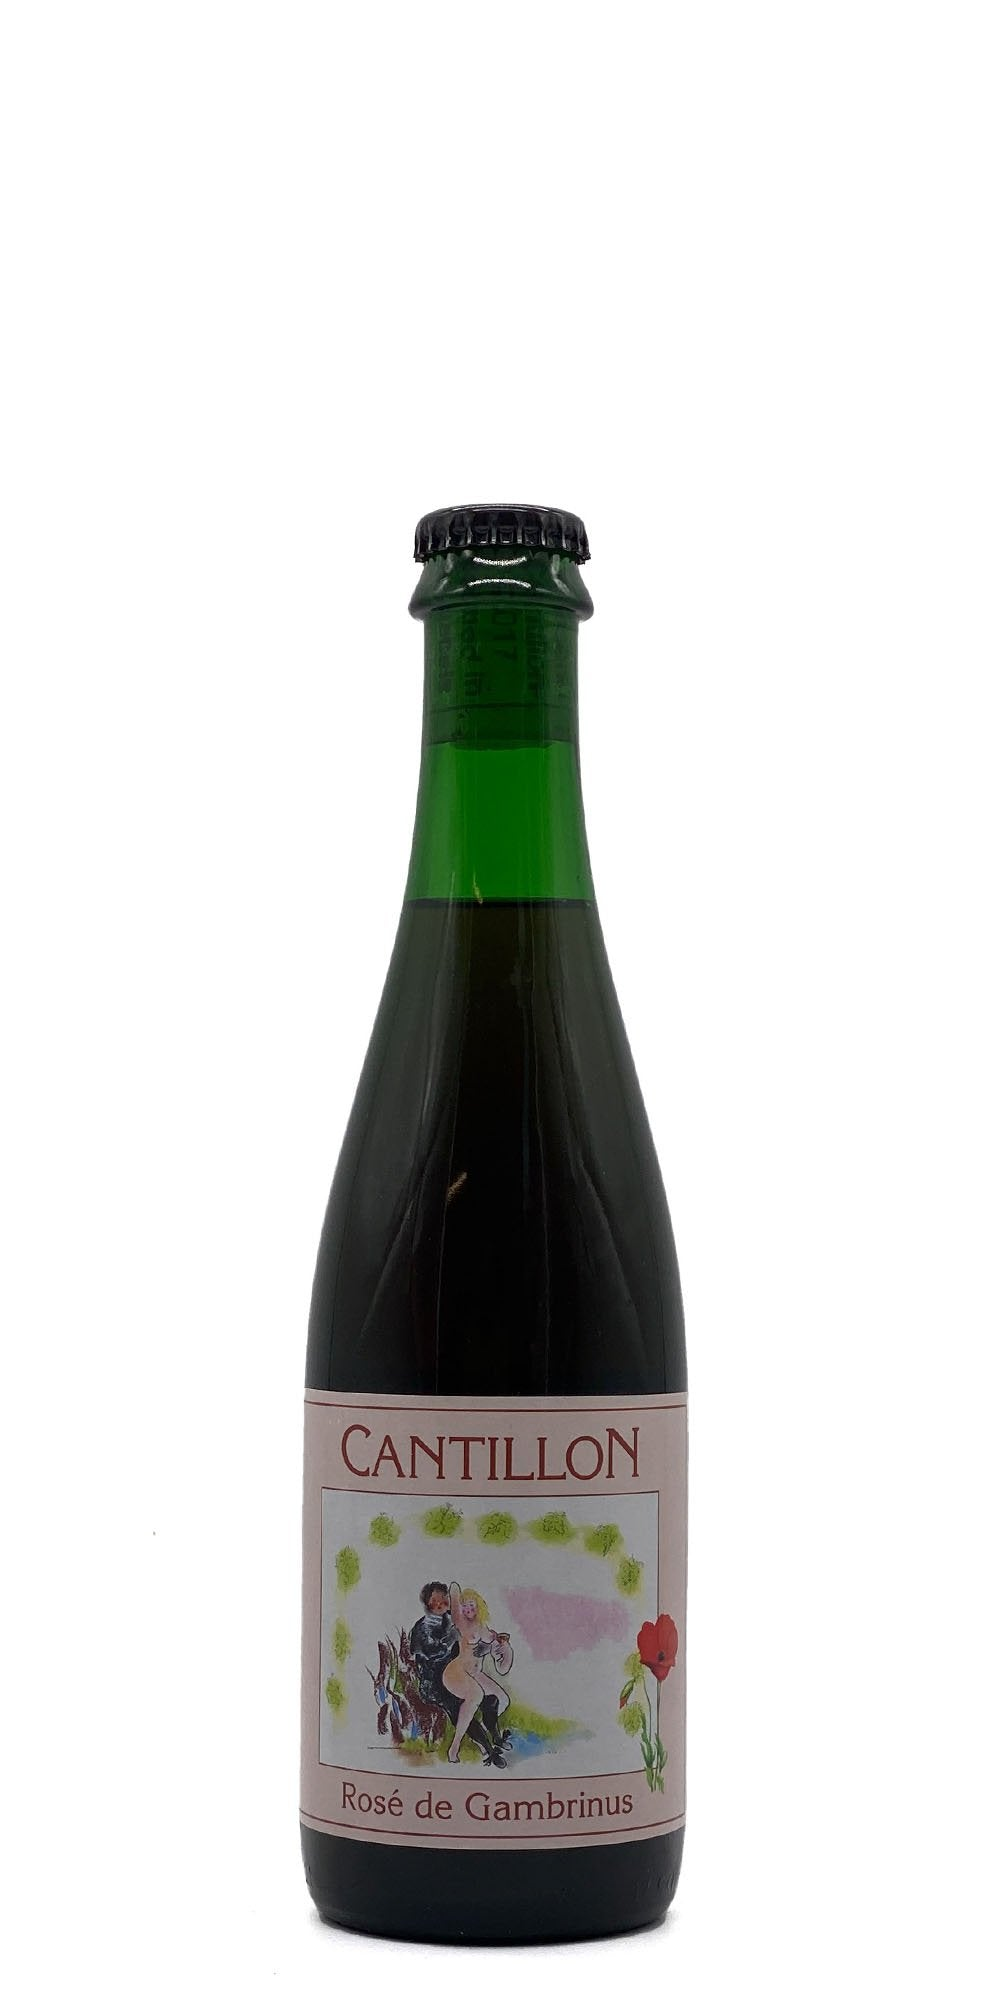 Cantillon - Rose de Gambrinus 2017